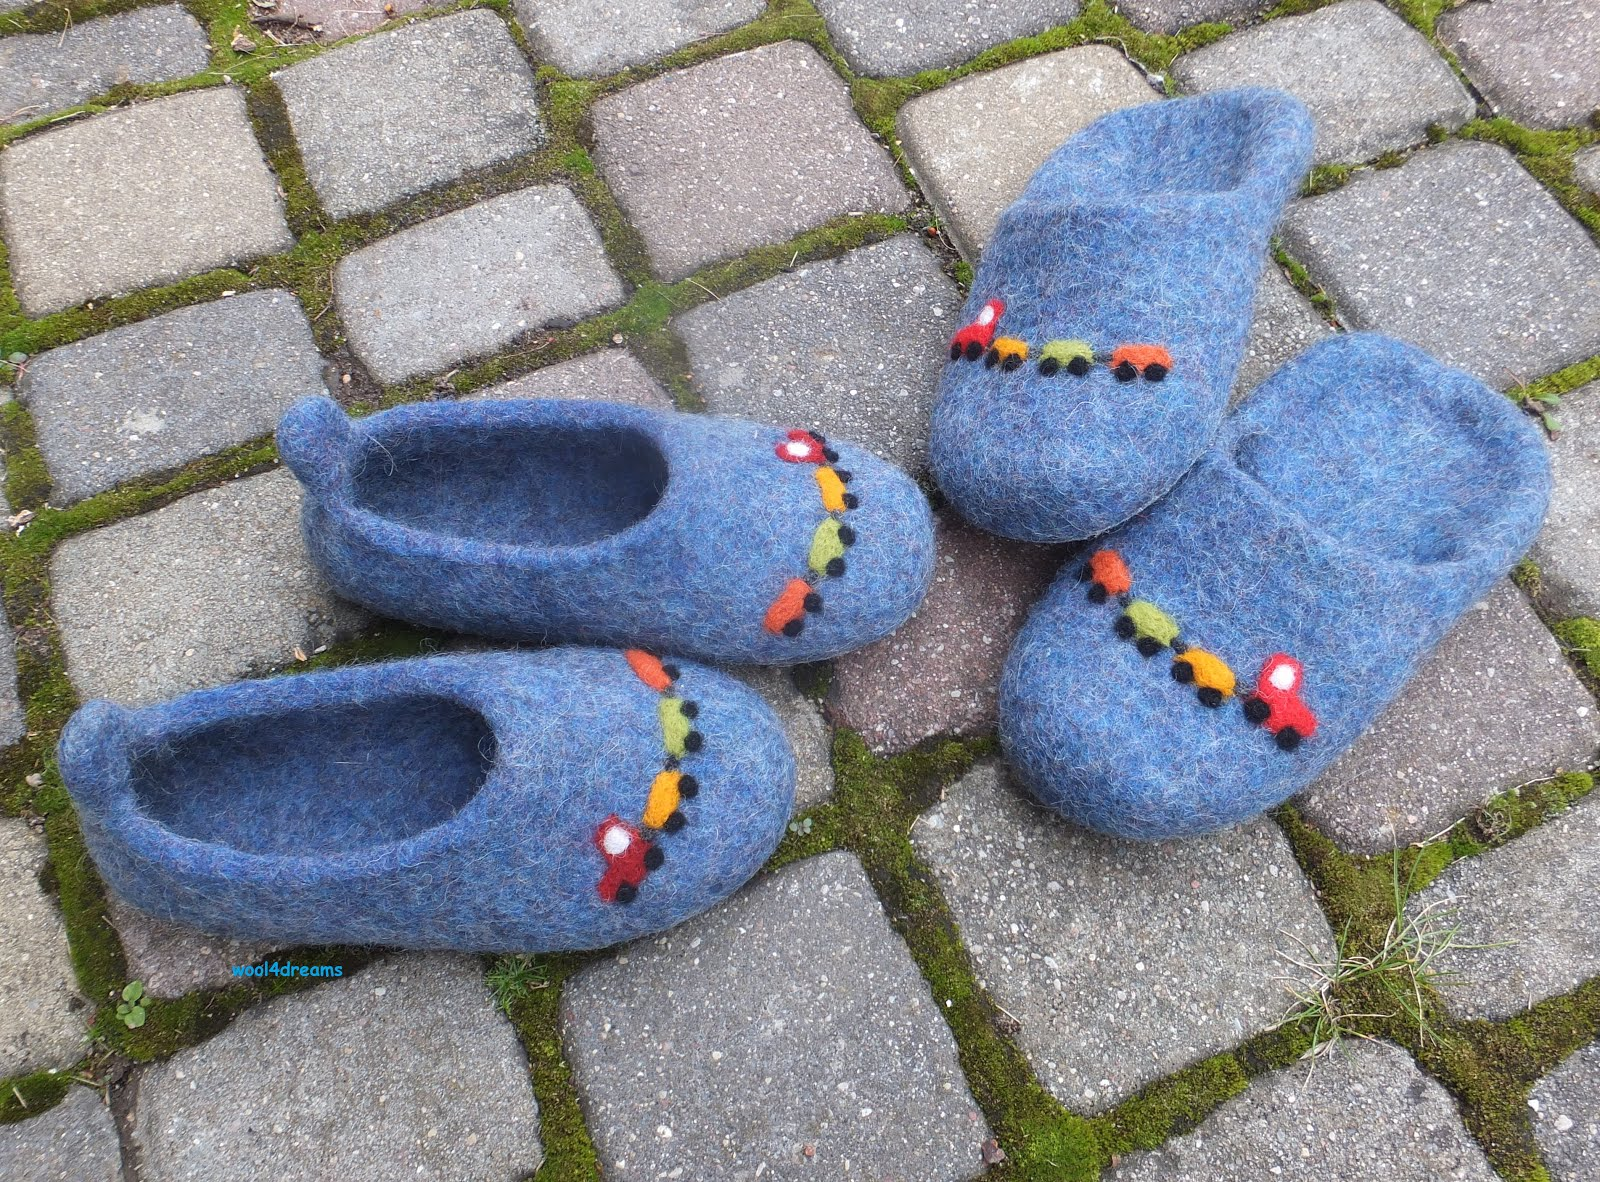 Filcētas čības bērniem        Felt slippers for children